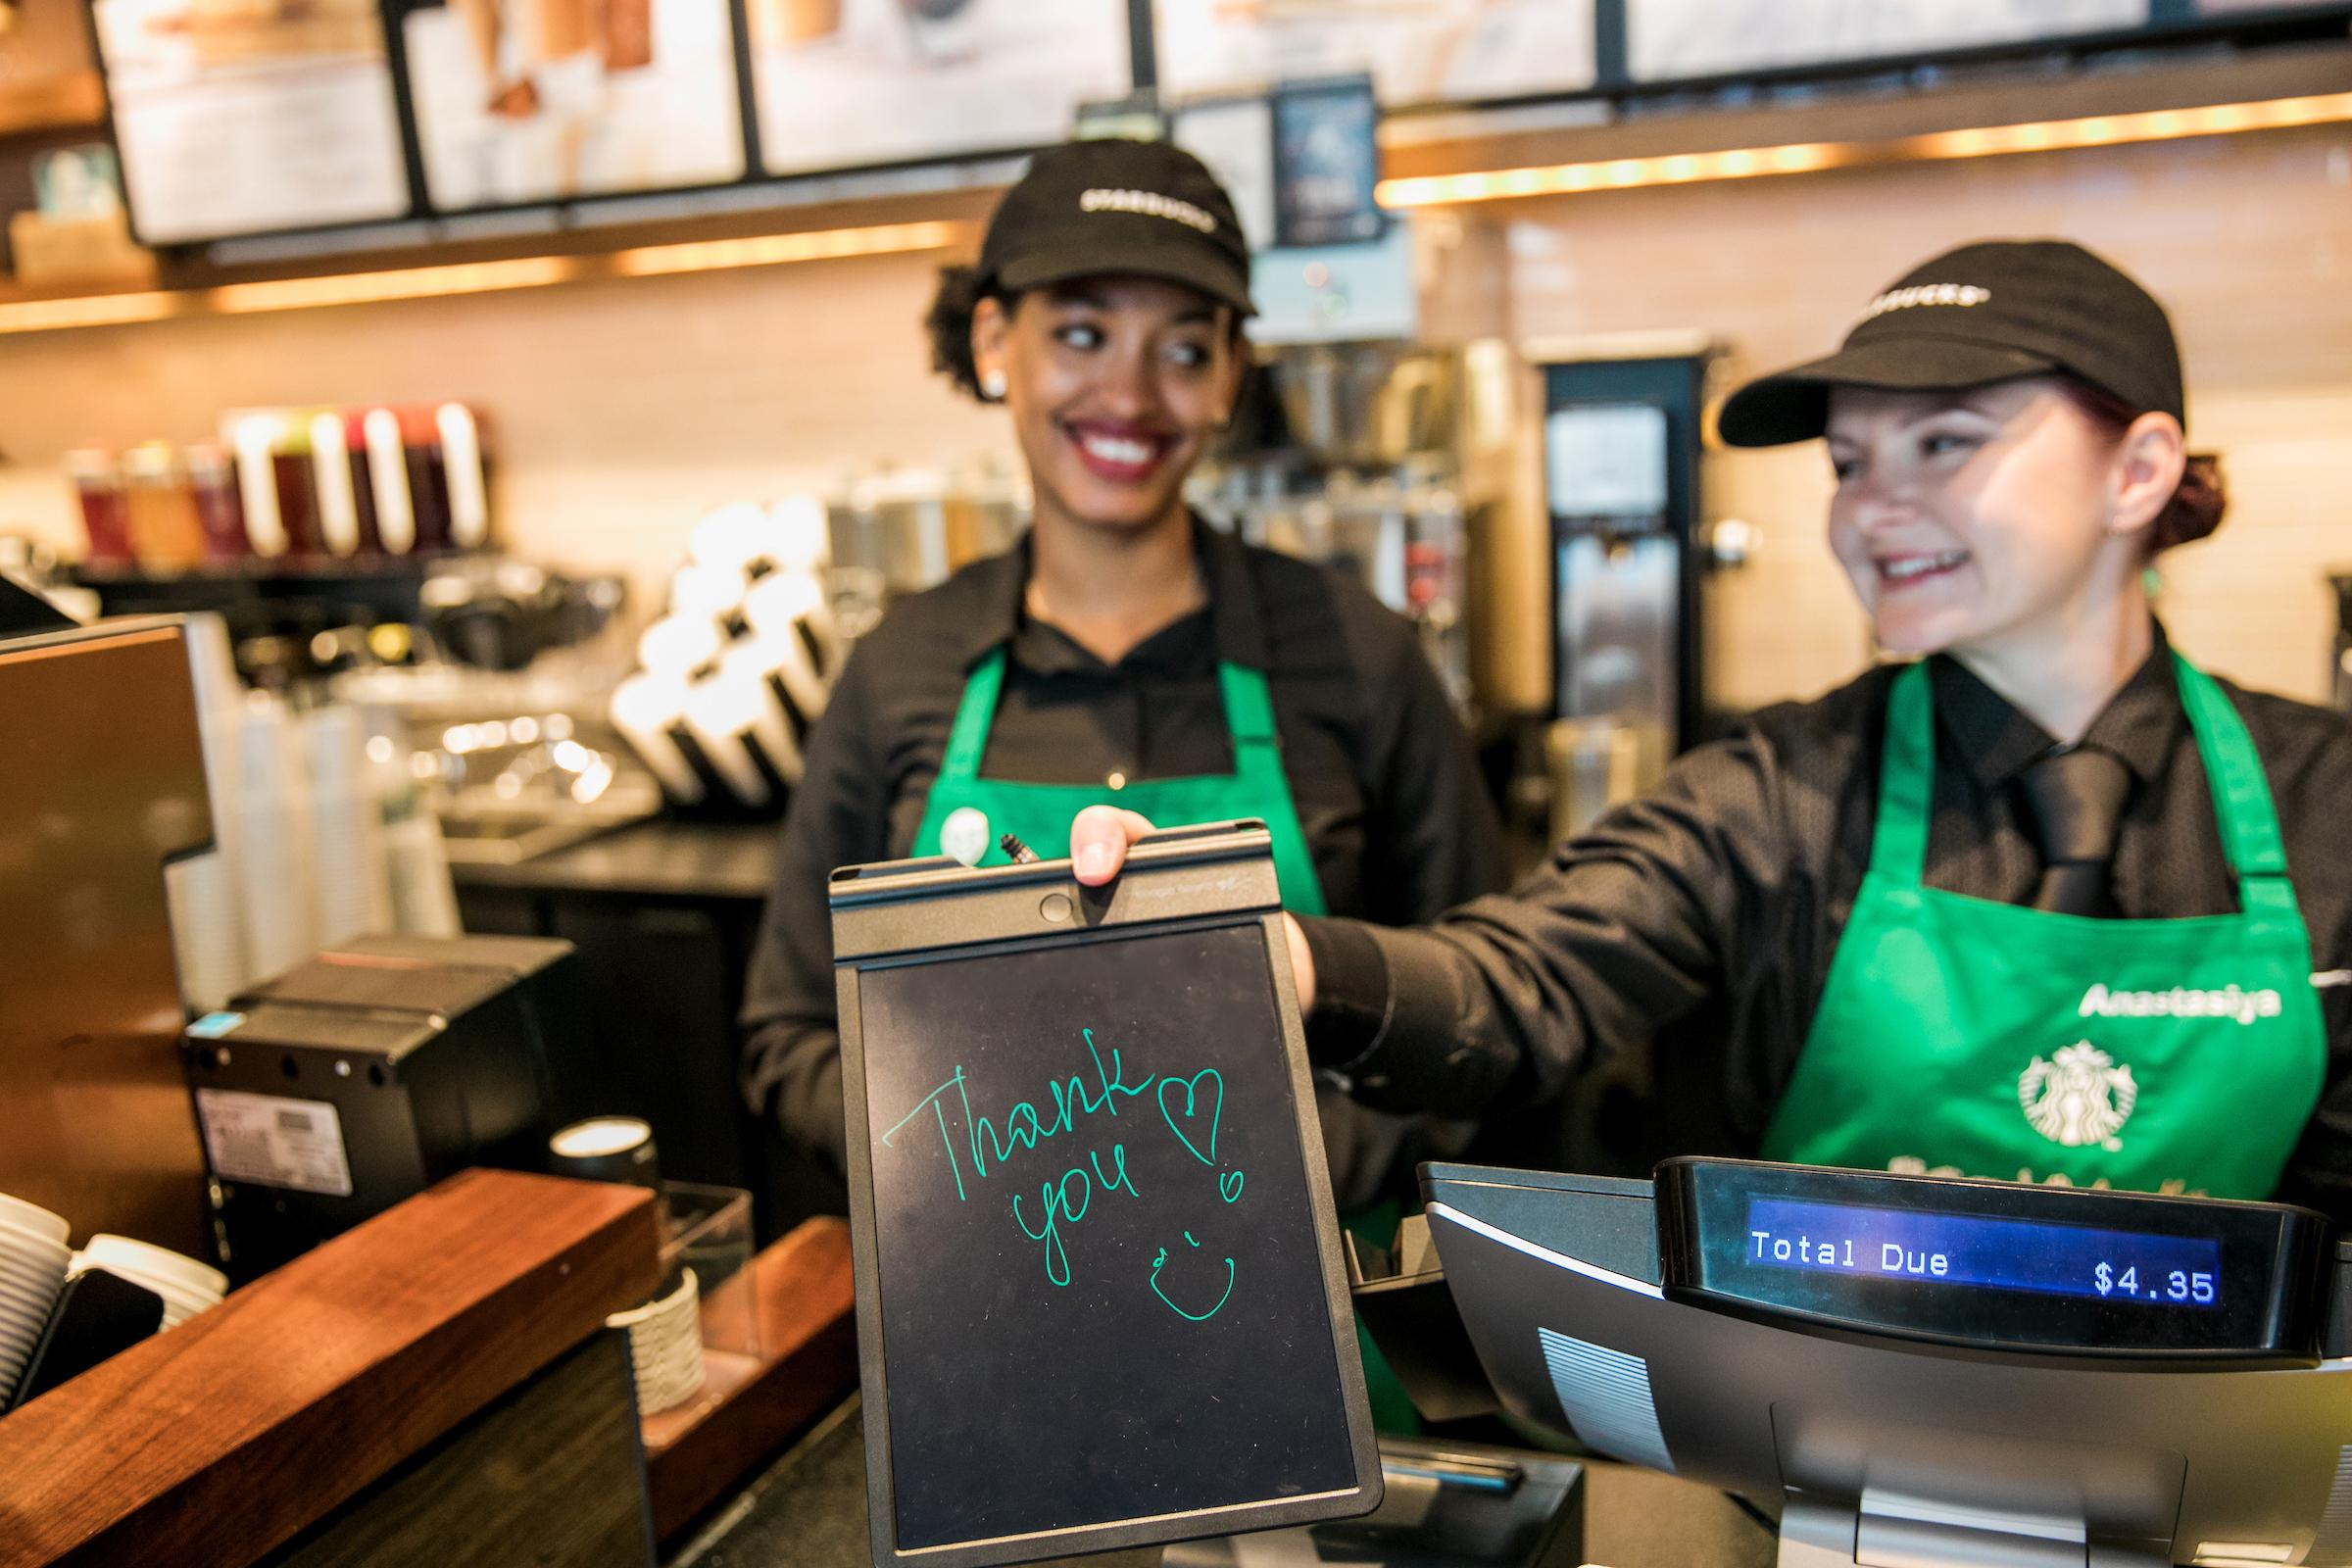 You don't need to know ASL to get your caffeine fix at this Starbucks. You can write your order down and communicate with your barista.{ }(Image: Joshua Trujillo, Starbucks)